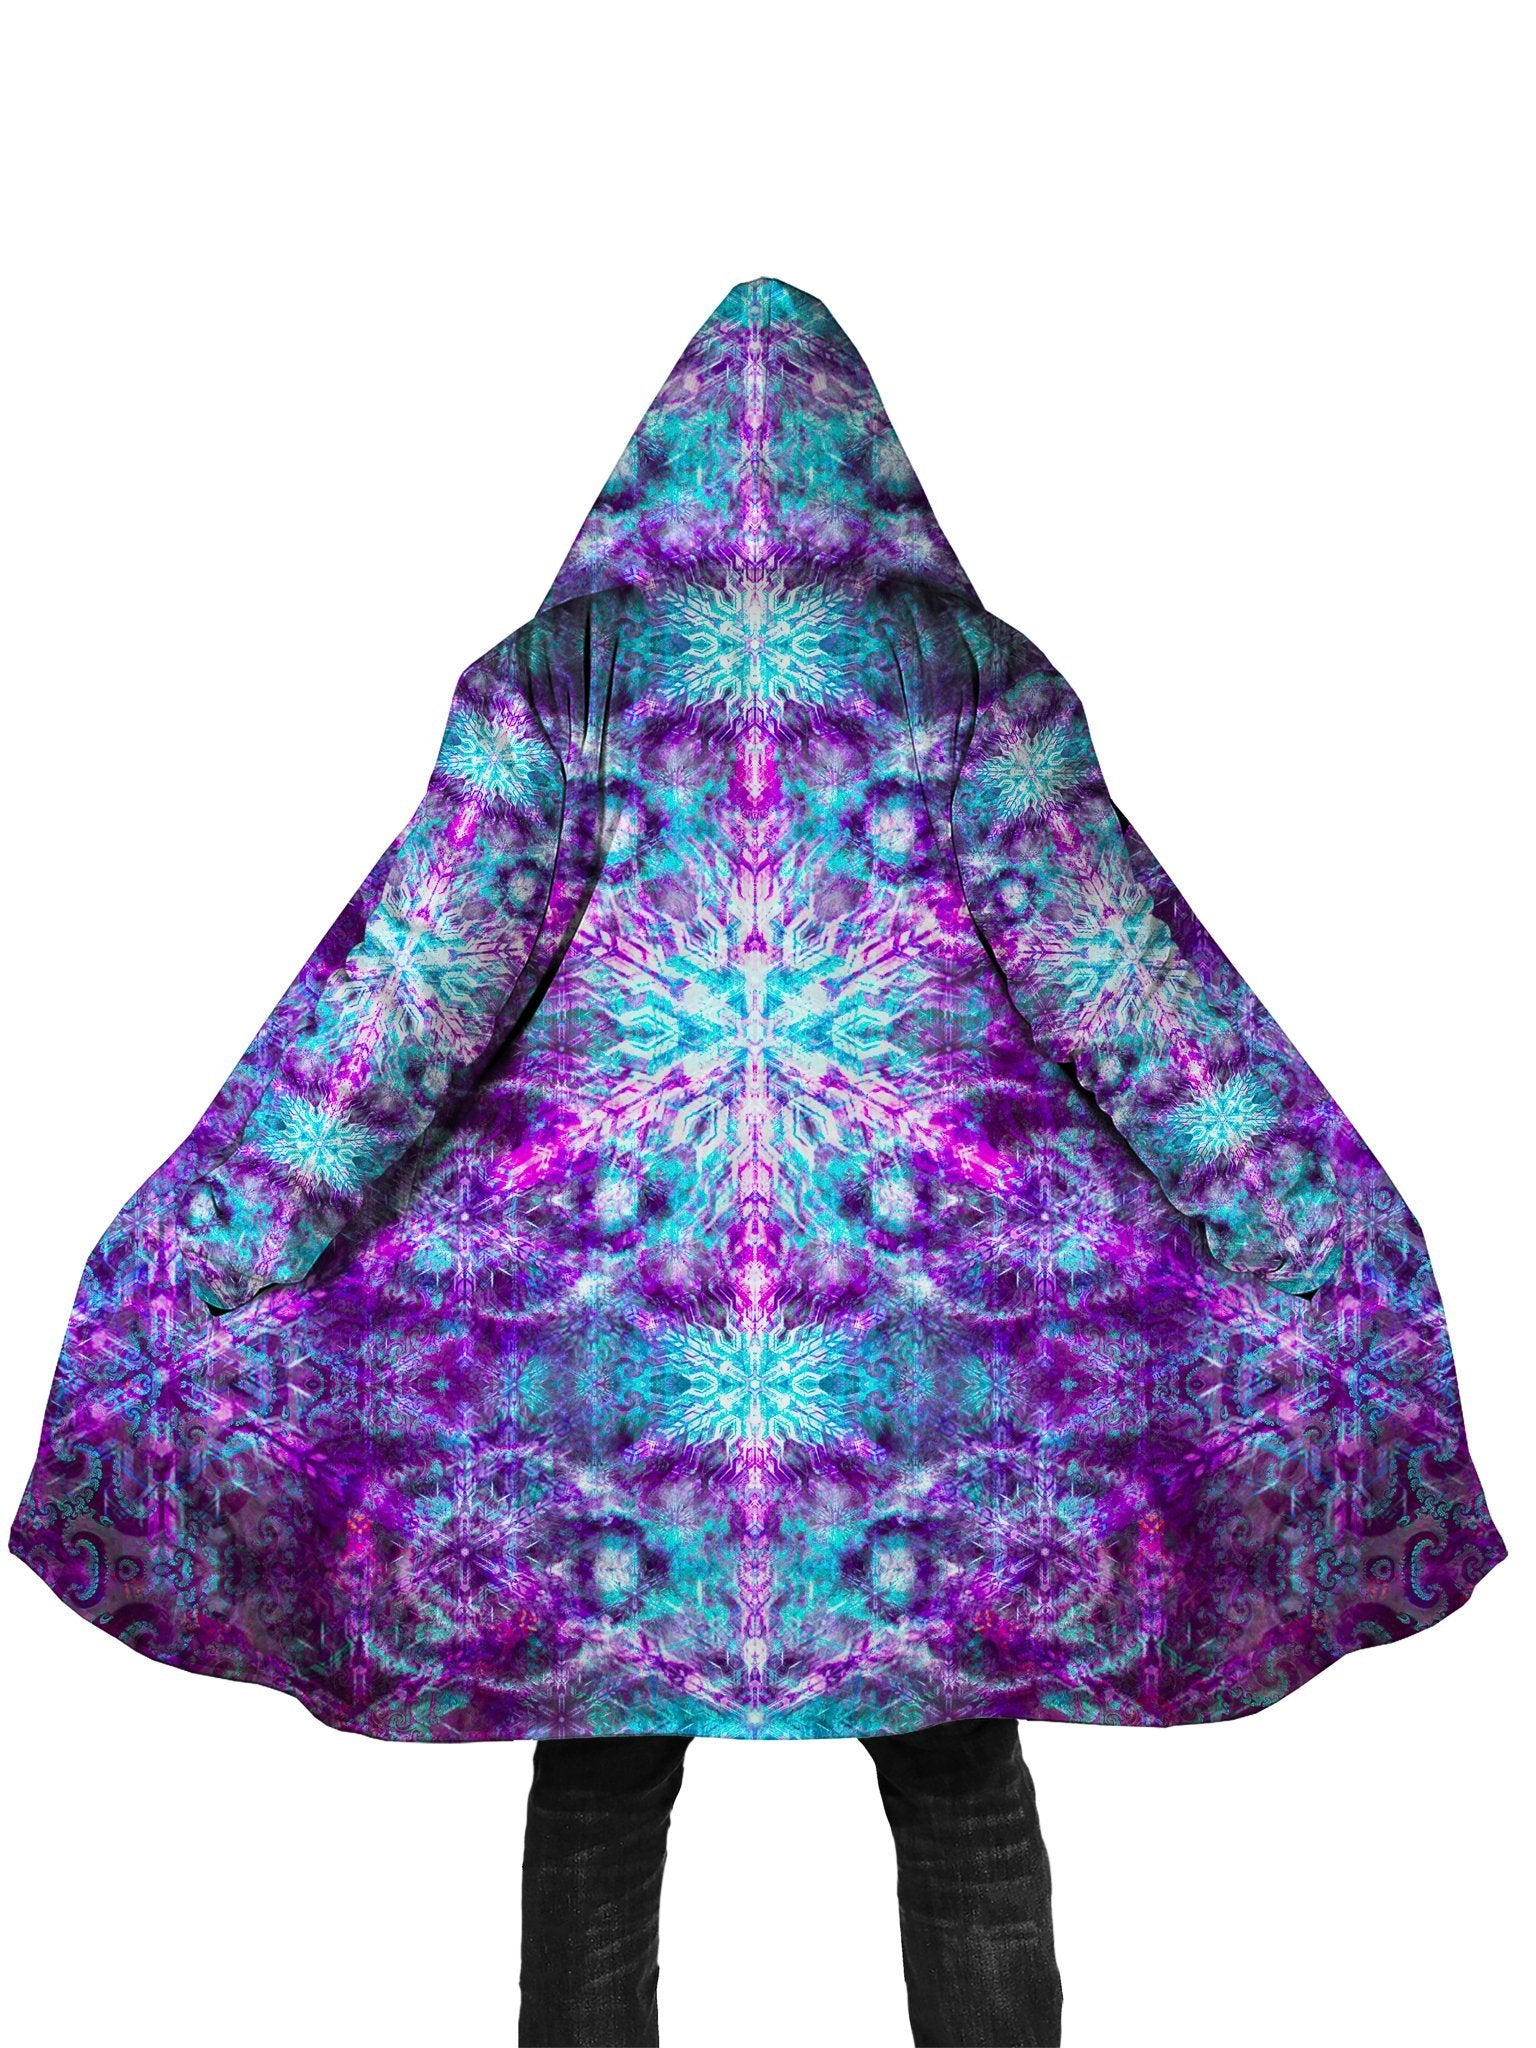 Mindfield Dream Cloak Dream Cloak Solstice Son